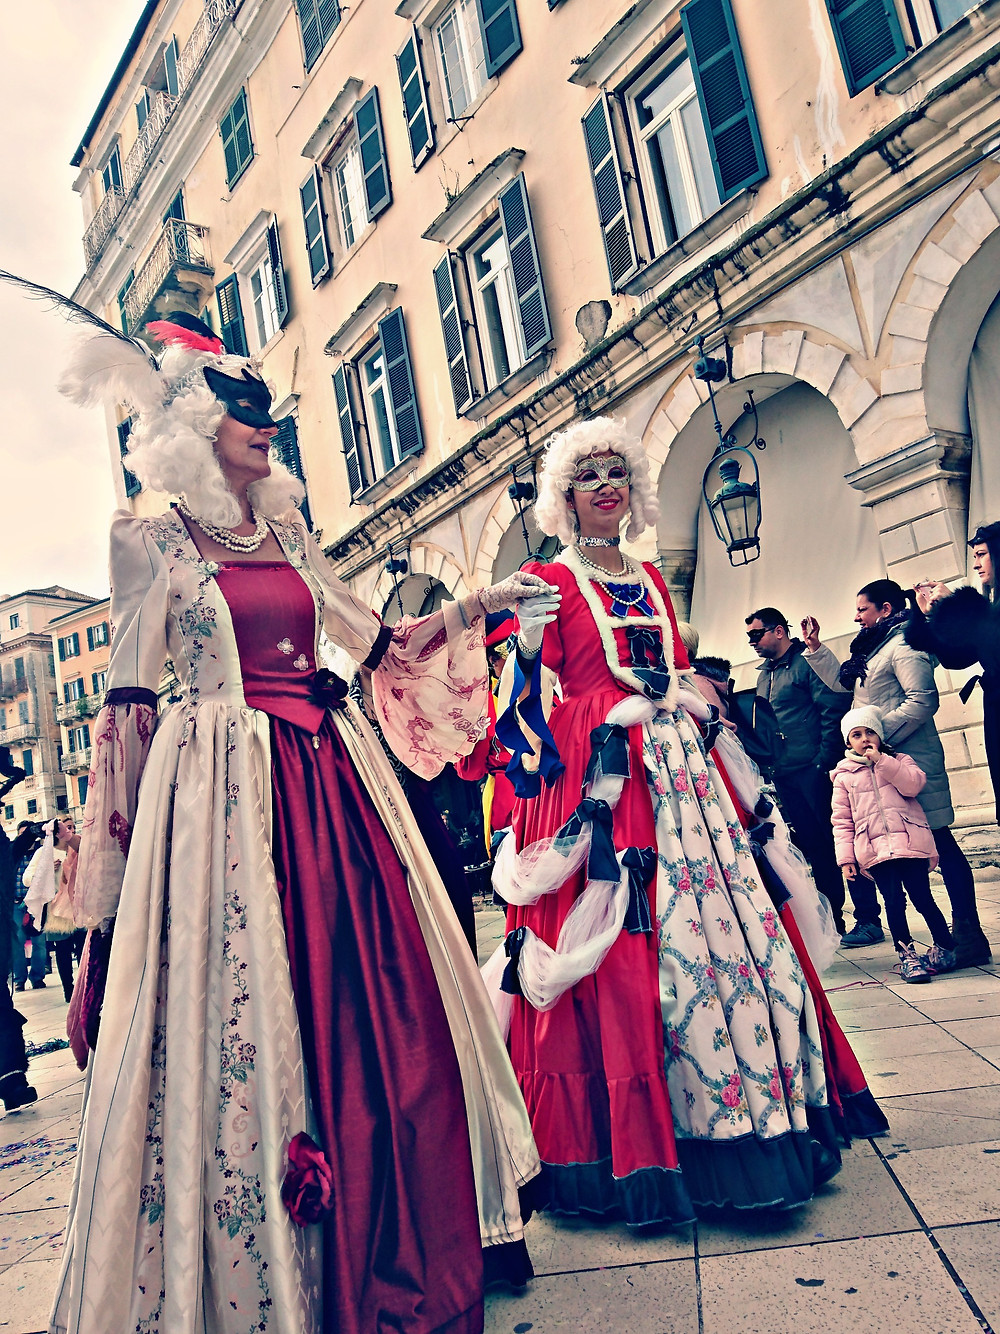 Venetian costumes - Photos by me